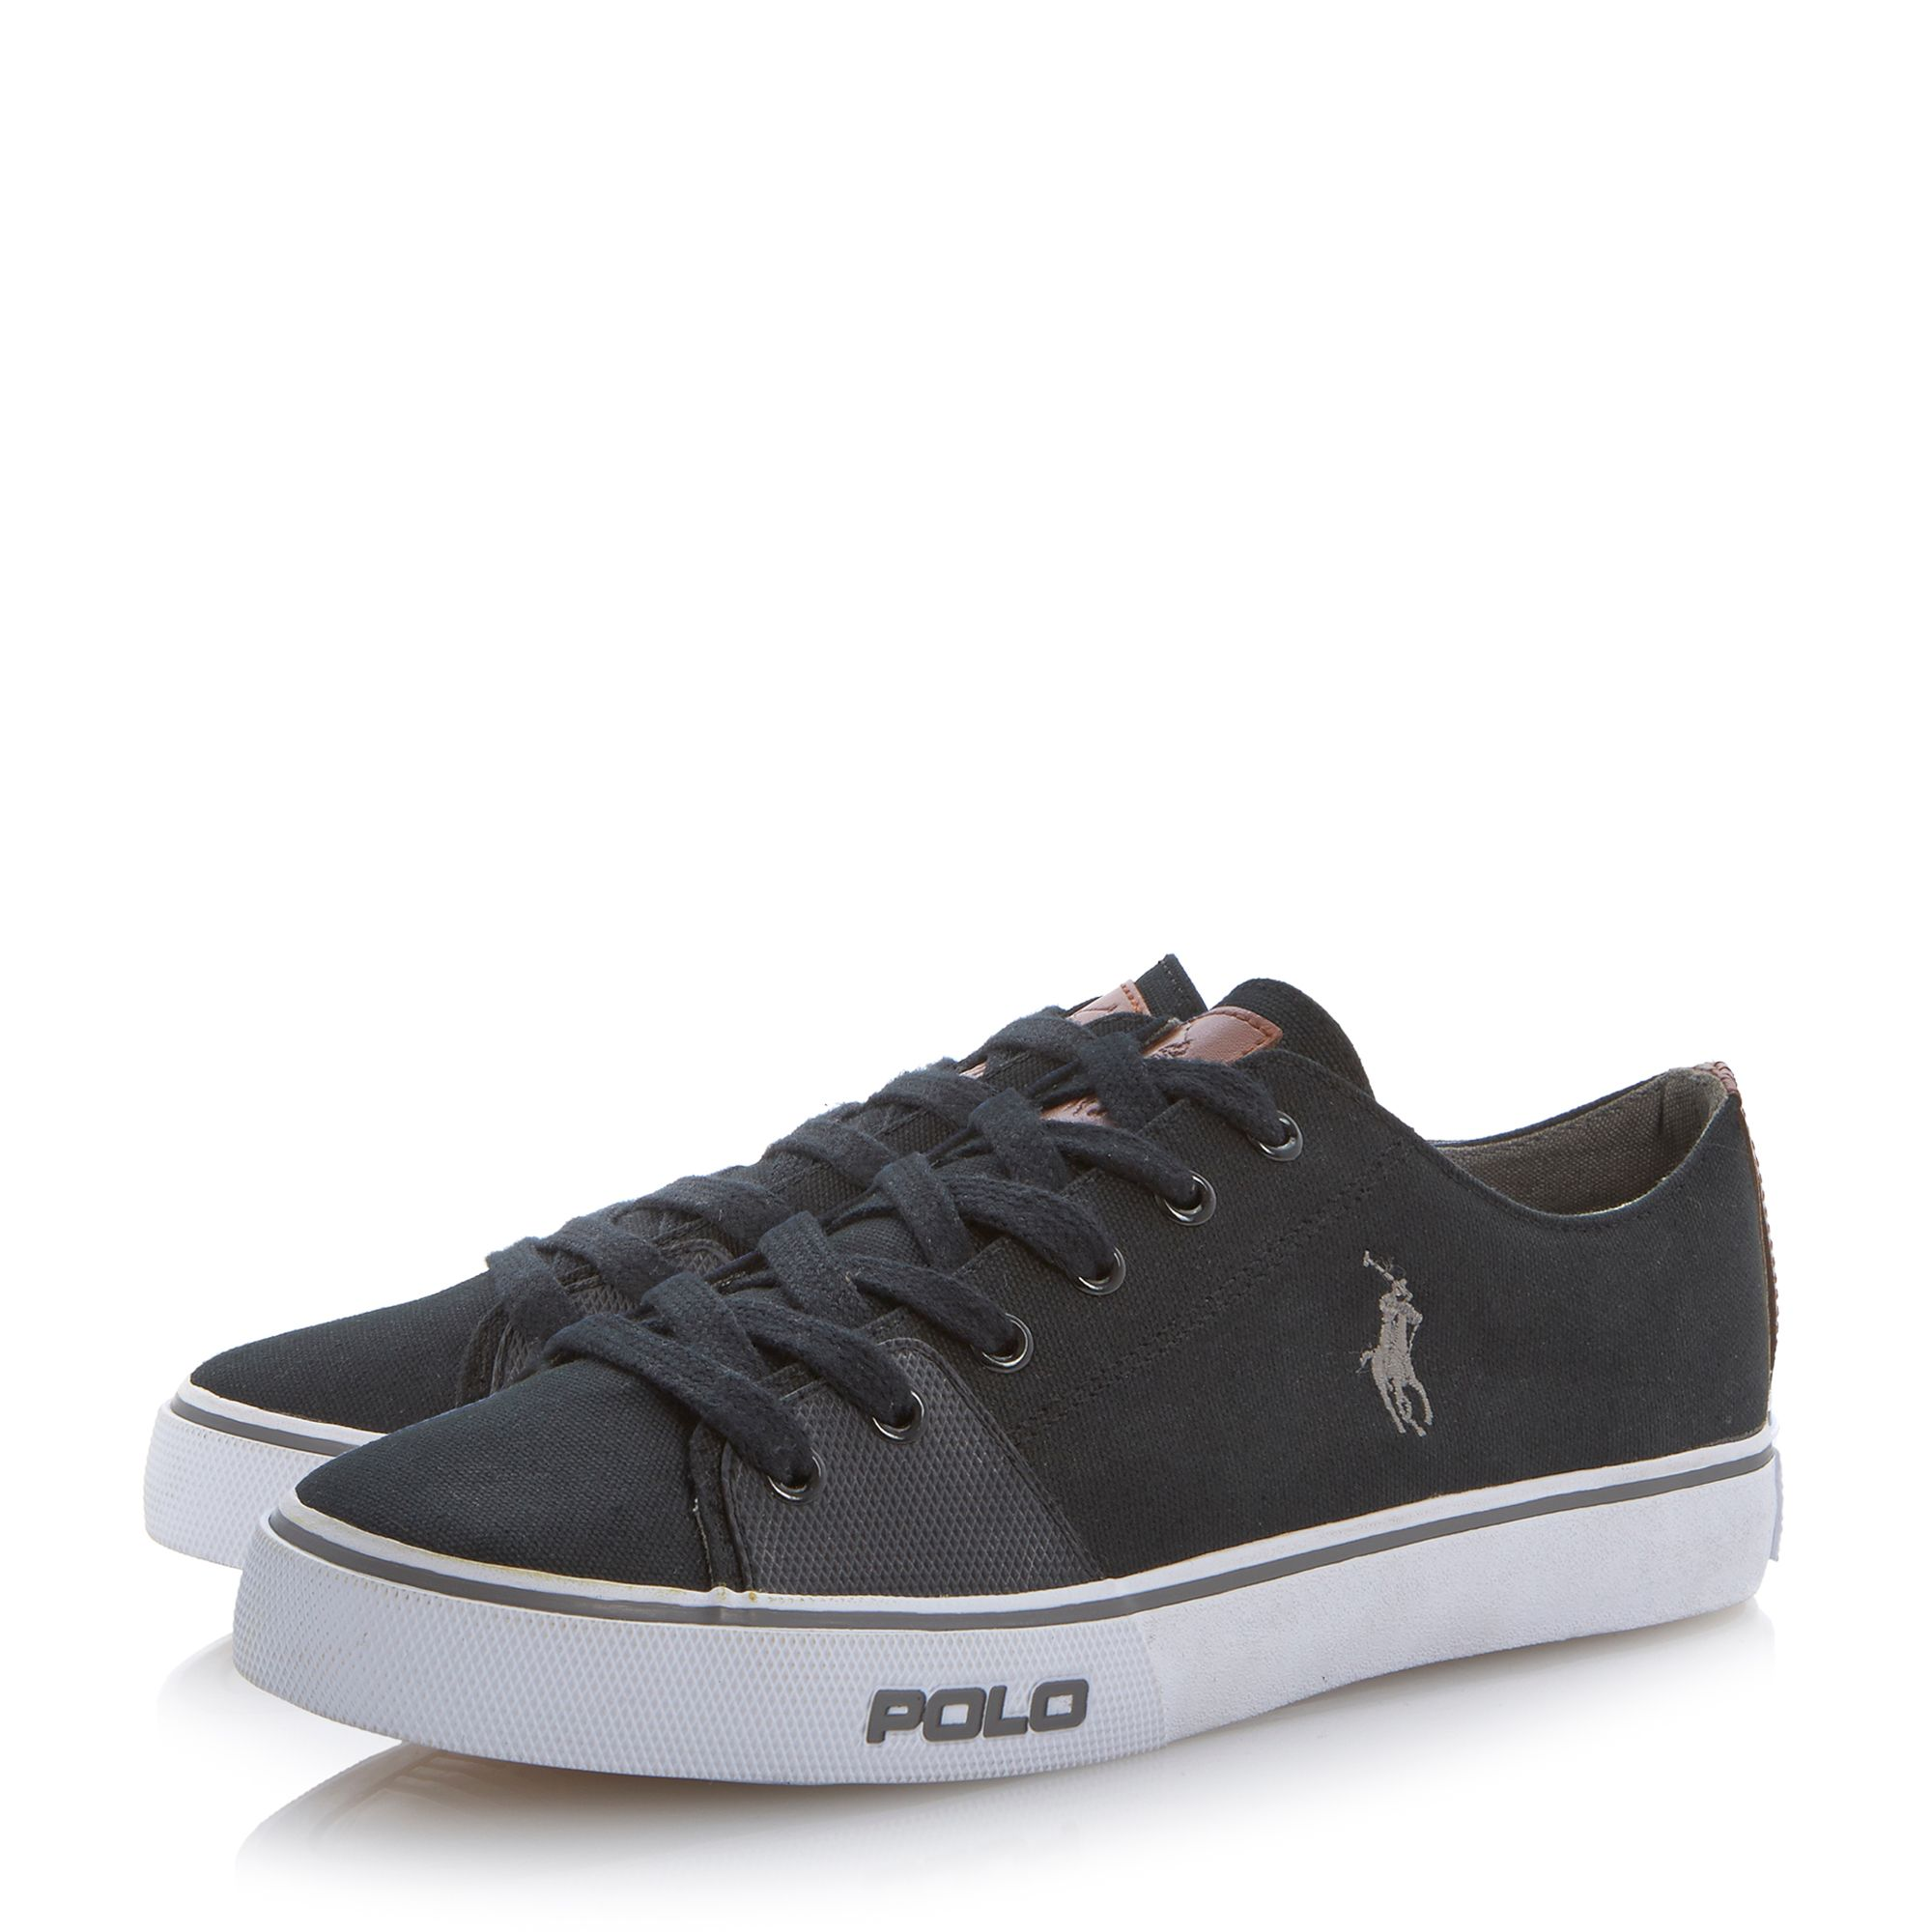 Cantor leather lace up trainers